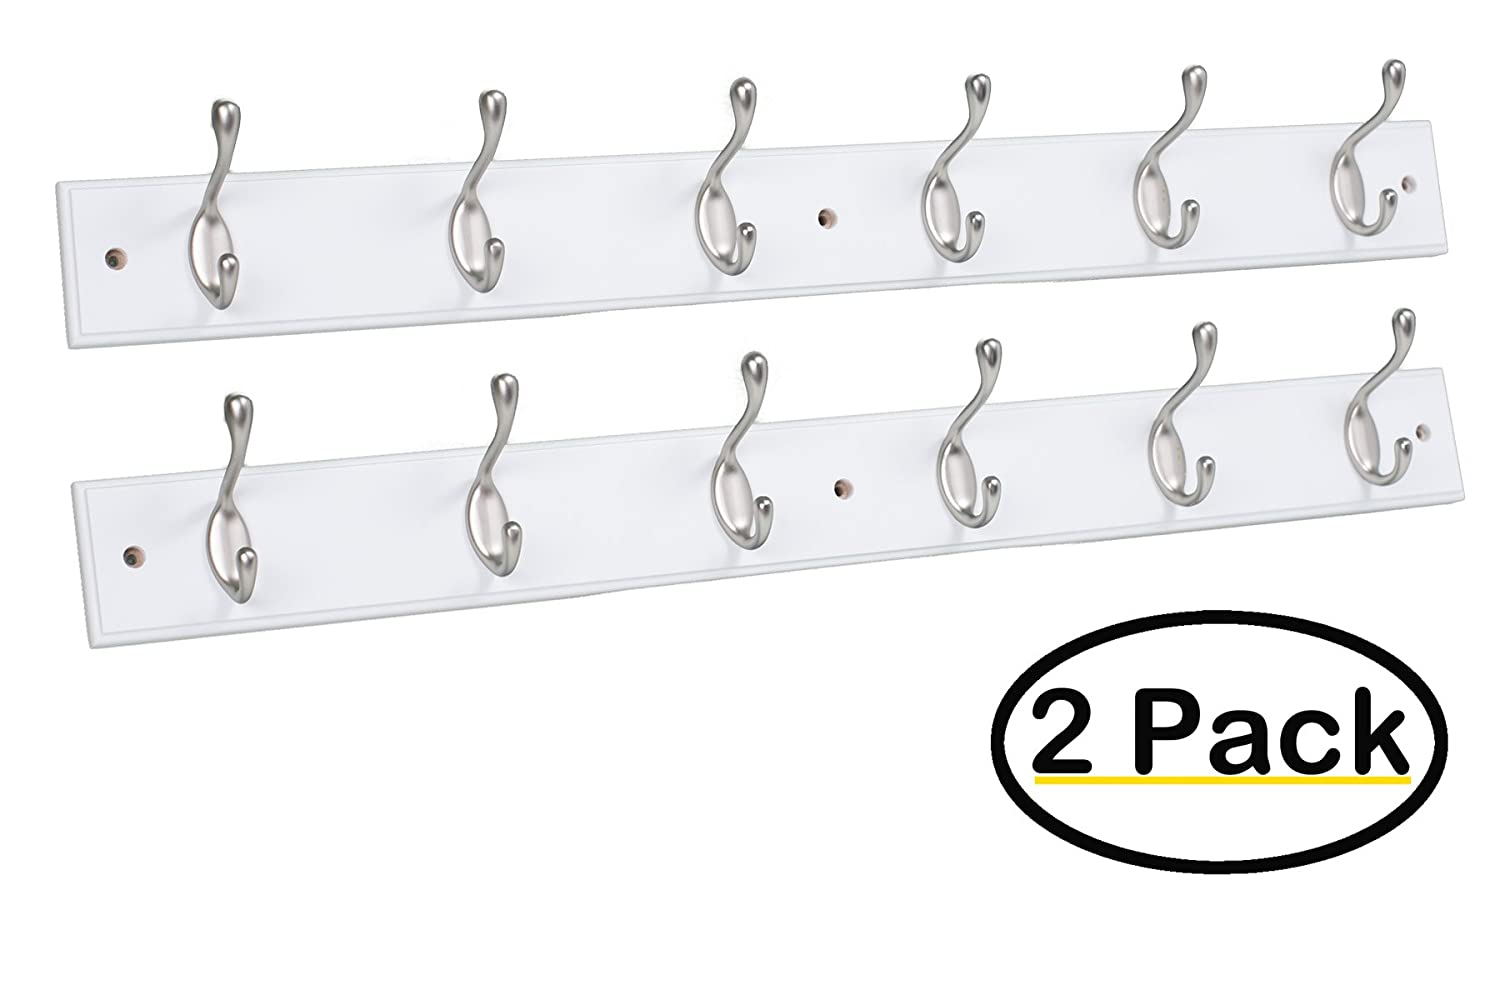 BirdRock Home Hook Coat and Hat Rack | 6 Dual Hooks | 27 Inches | Wall Mount | Decorative Home Storage | Entryway Foyer Hallway Bathroom Bedroom Rail | Satin Nickel Hooks | White Pine Bathroom Rail 3117